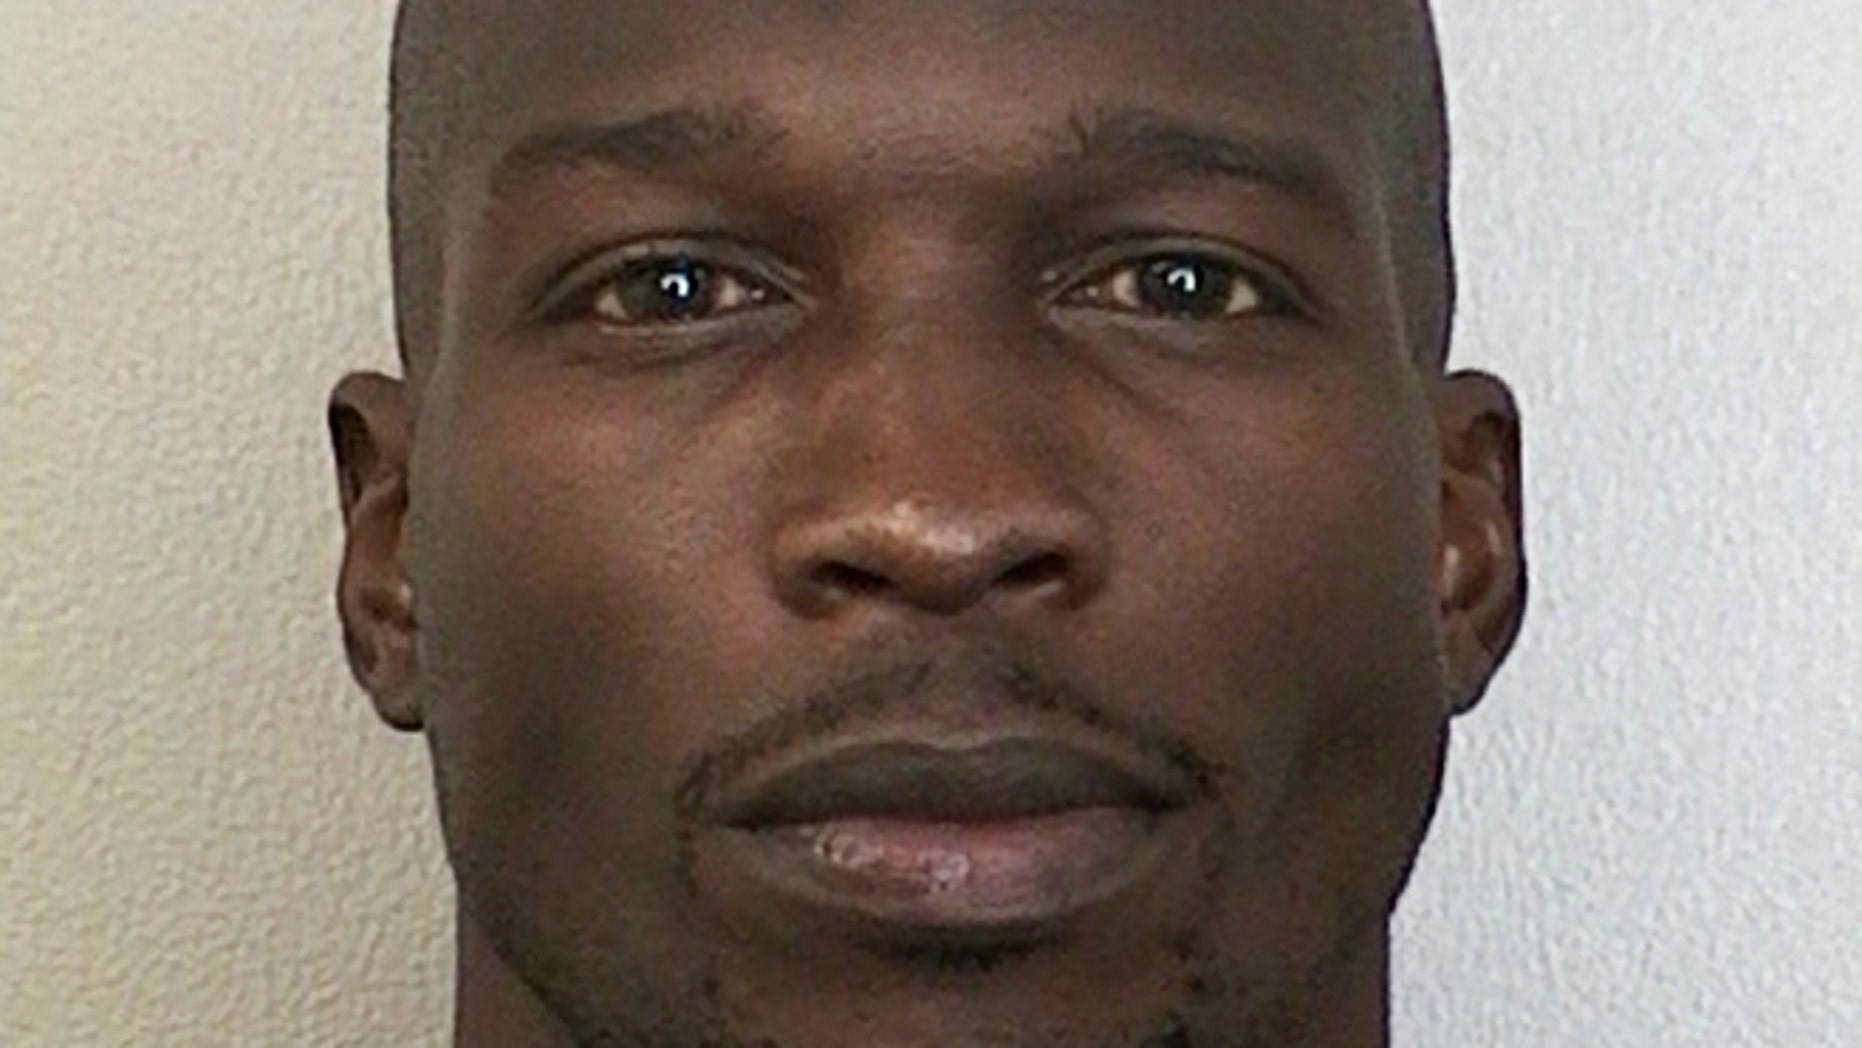 This undated photo provided by the Broward Sheriff's Office shows Miami Dolphins wide receiver Chad Johnson.